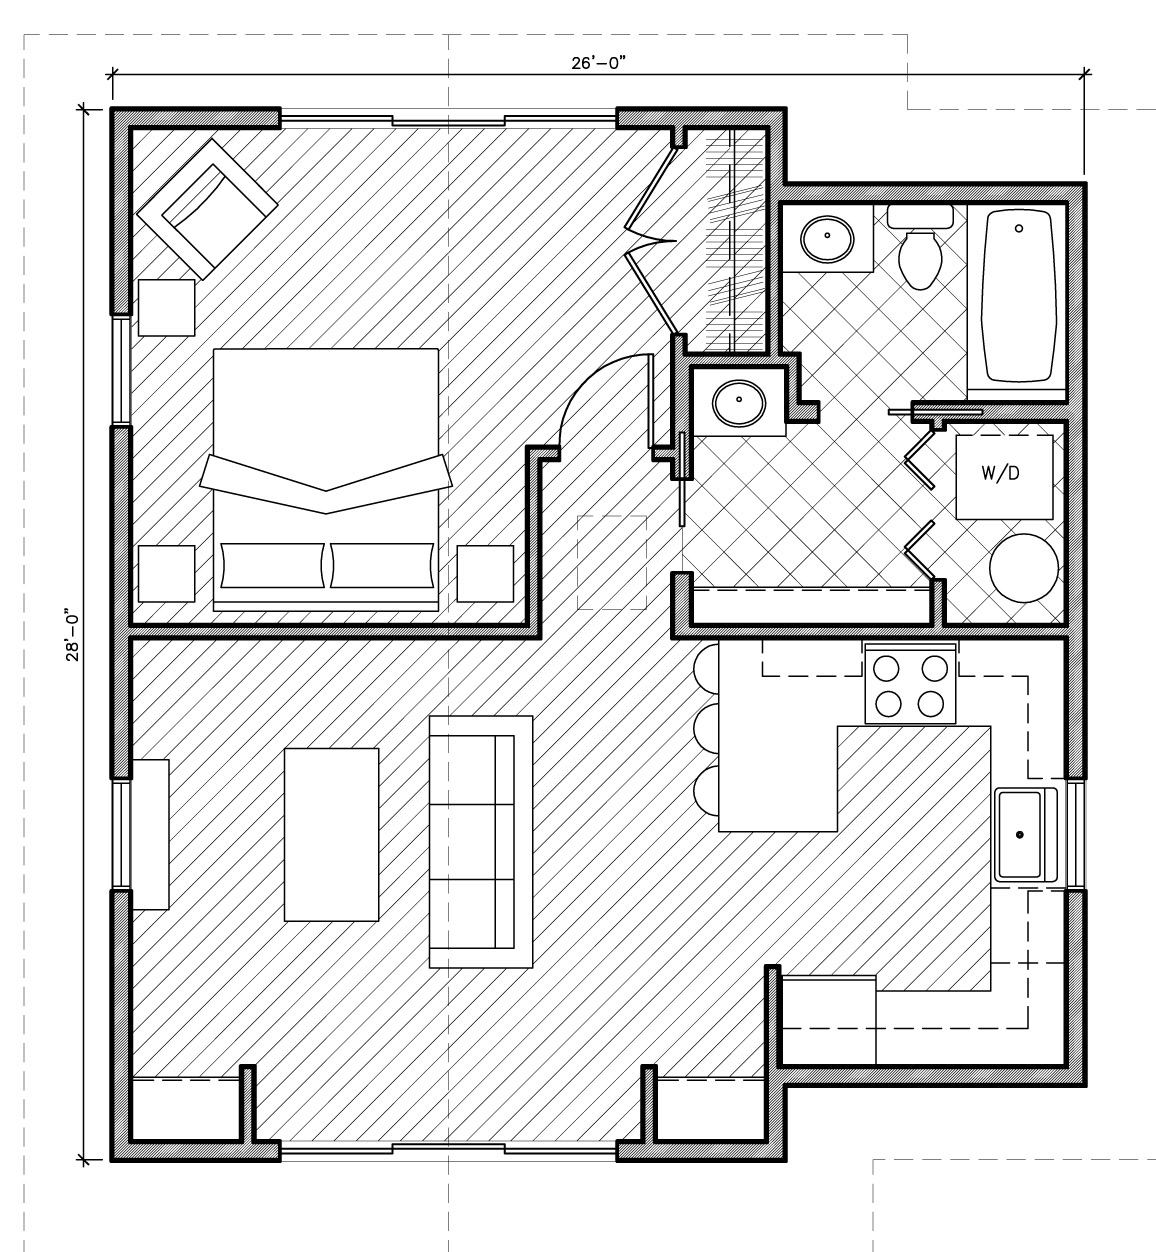 Design banter home plan collection for One bedroom house design